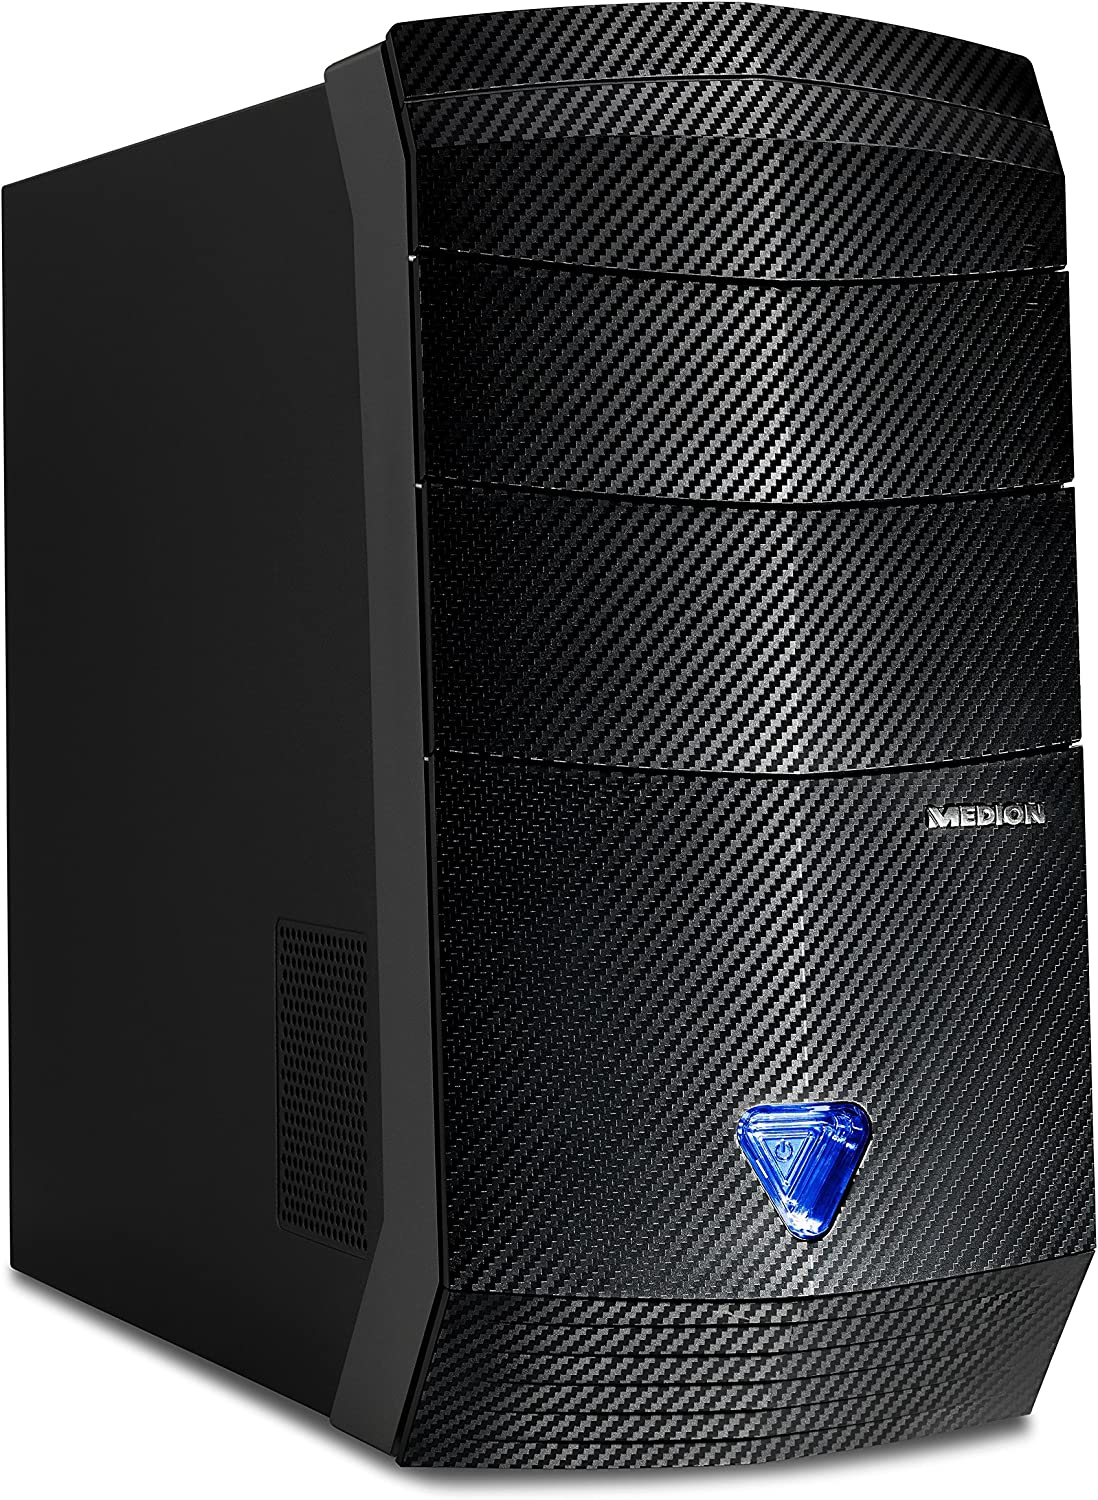 MEDION ERAZER P4609 D - Ordenador de sobremesa (Intel Core i7-7700, 8 GB de RAM, HDD de 1 TB + SSD de 120 GB, NVIDIA GeForce GTX 1060, Windows 10 Home) negro